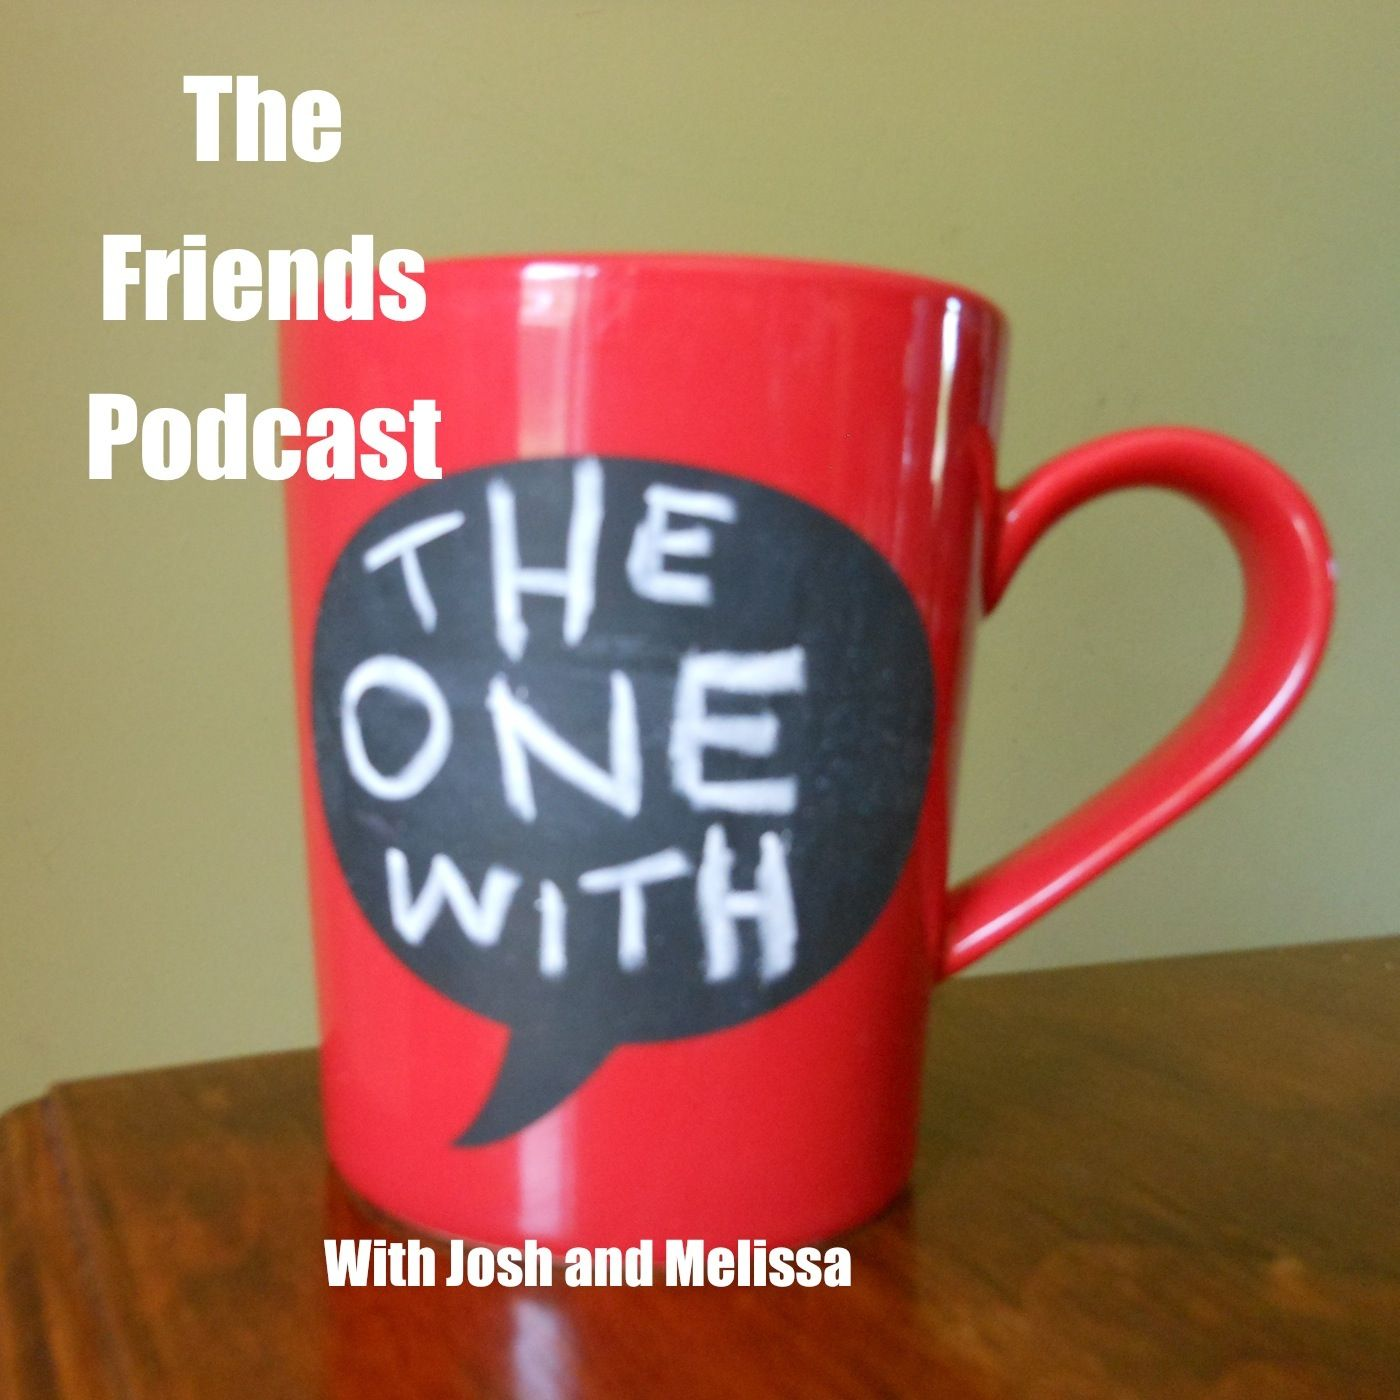 The One With Podcast